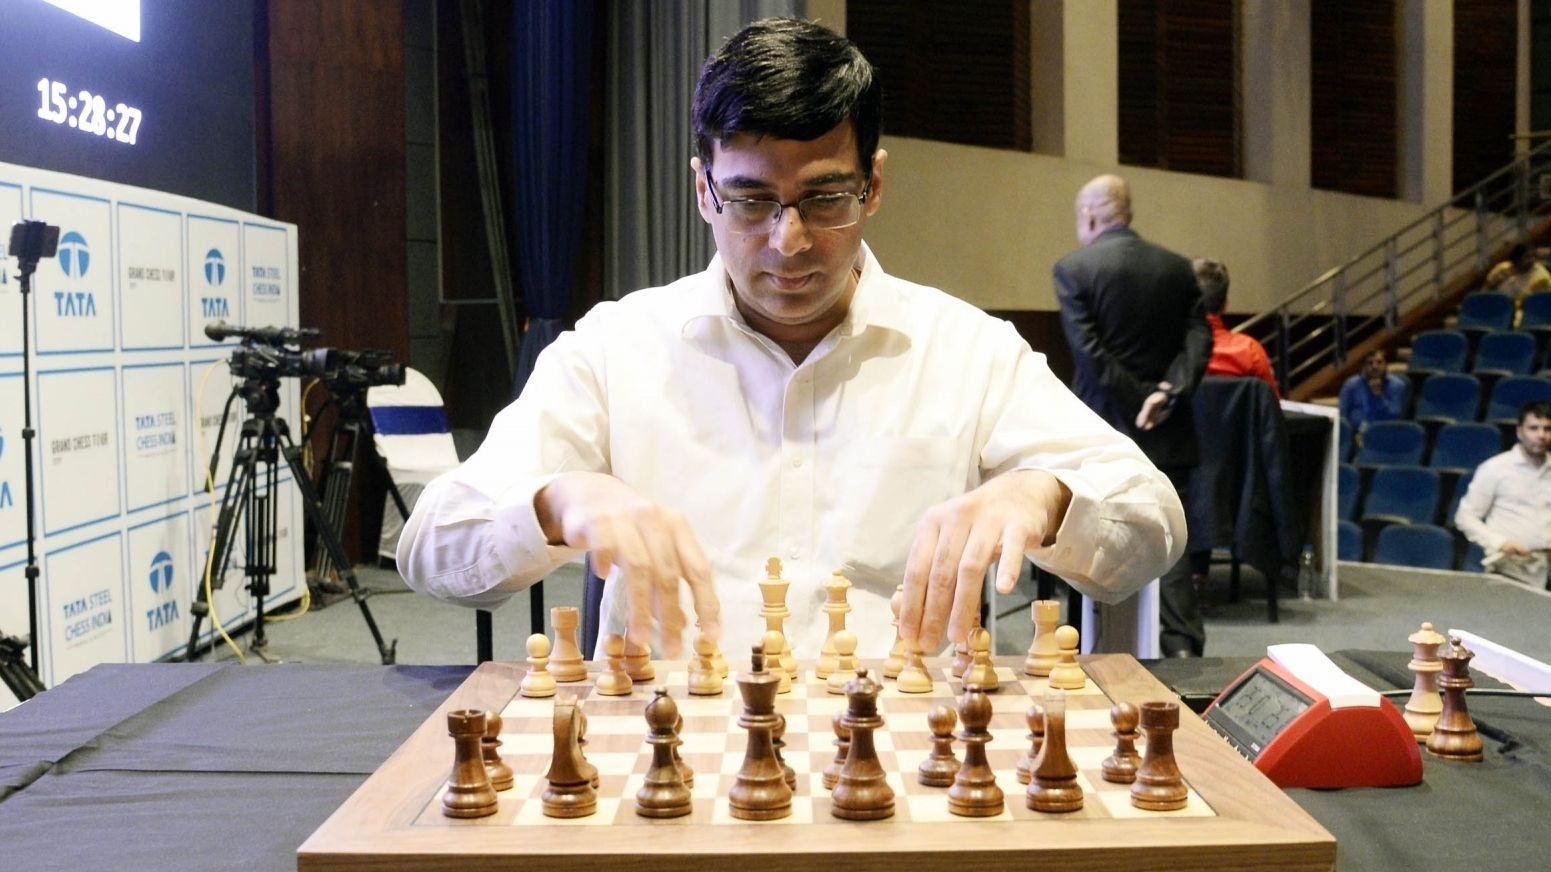 I'm Okay With Failure But the Hope's Killing Me: Viswanathan Anand